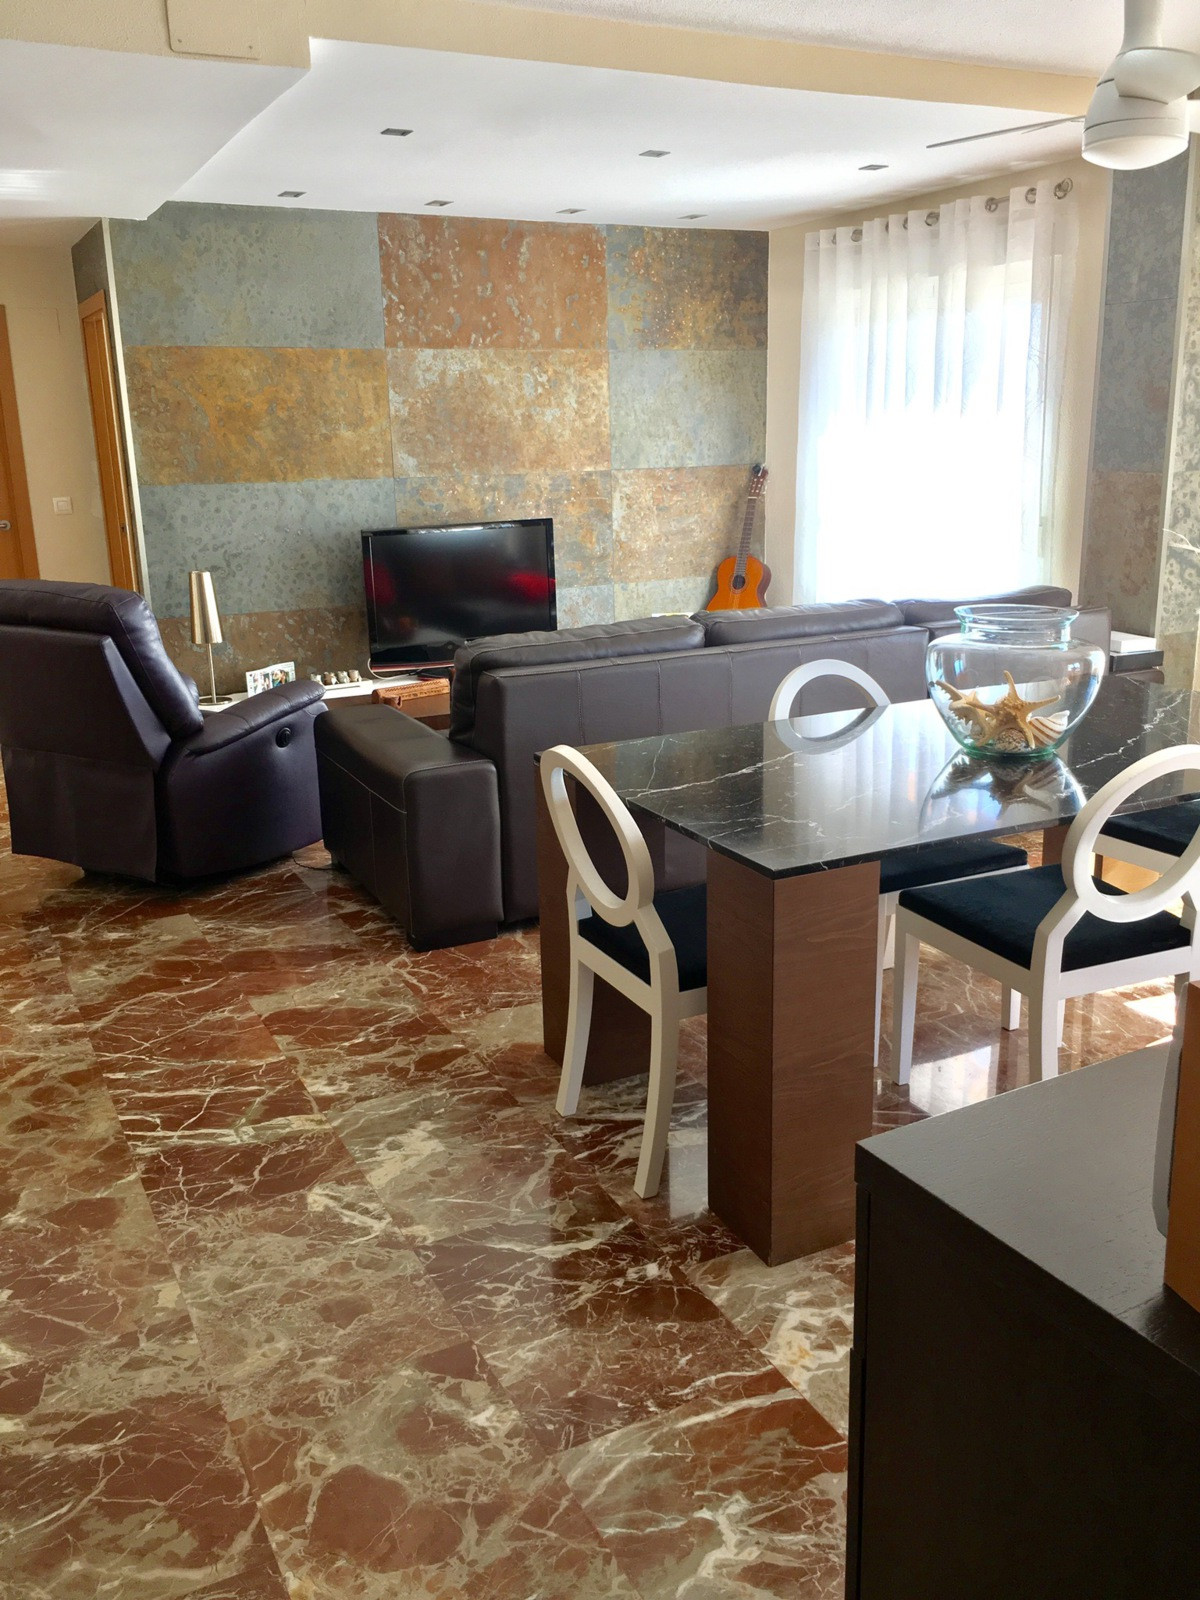 Magnificent two bedroom apartment with parking space and store, just 15 minutes walk from the beauti,Spain